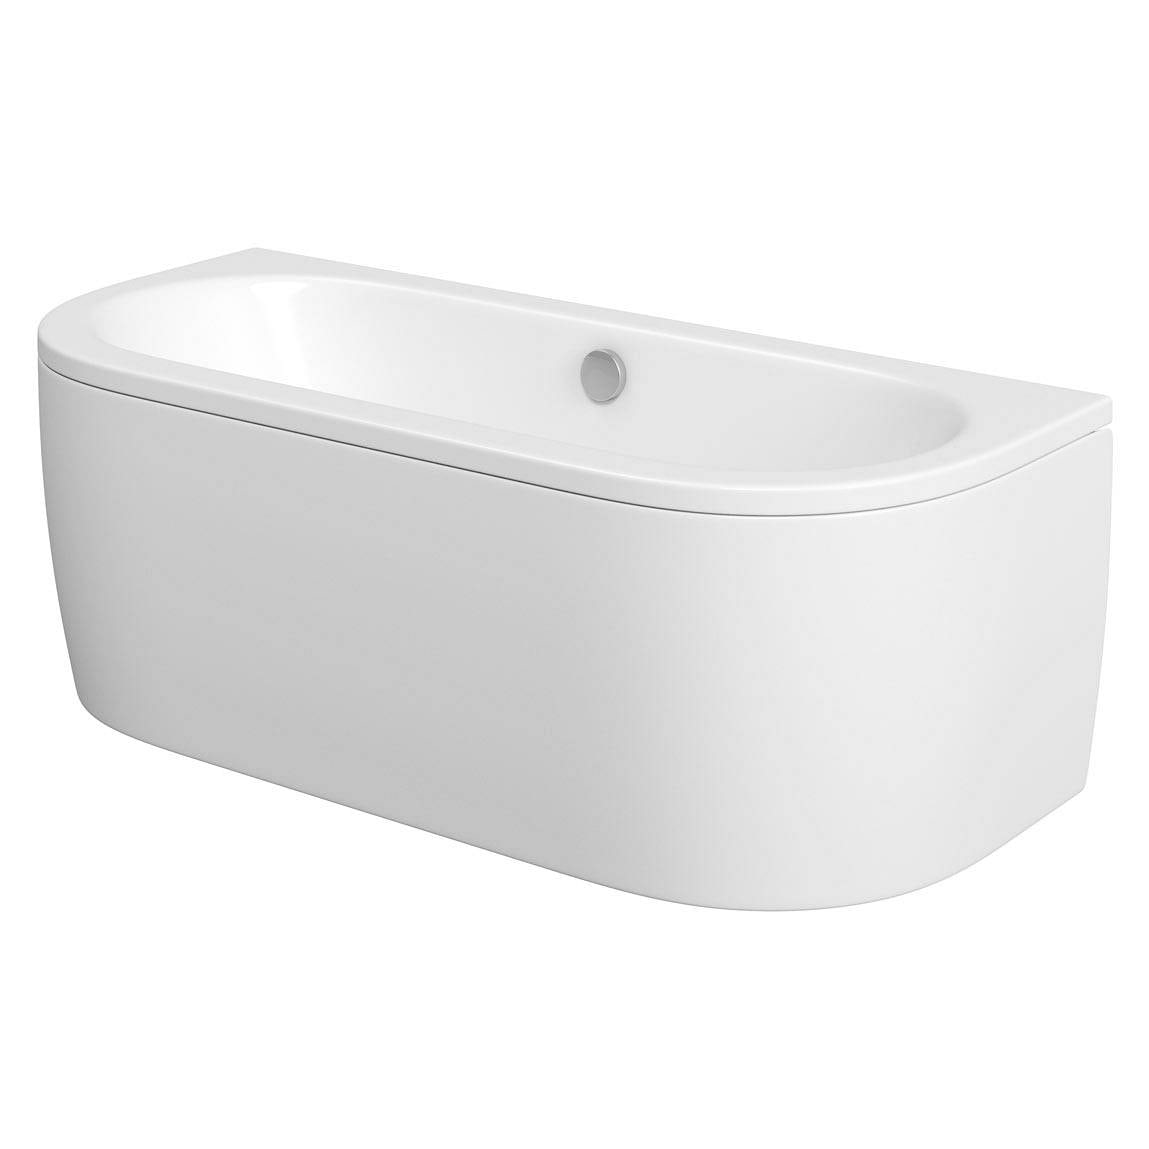 Mode Cayman D shaped double ended back to wall bath